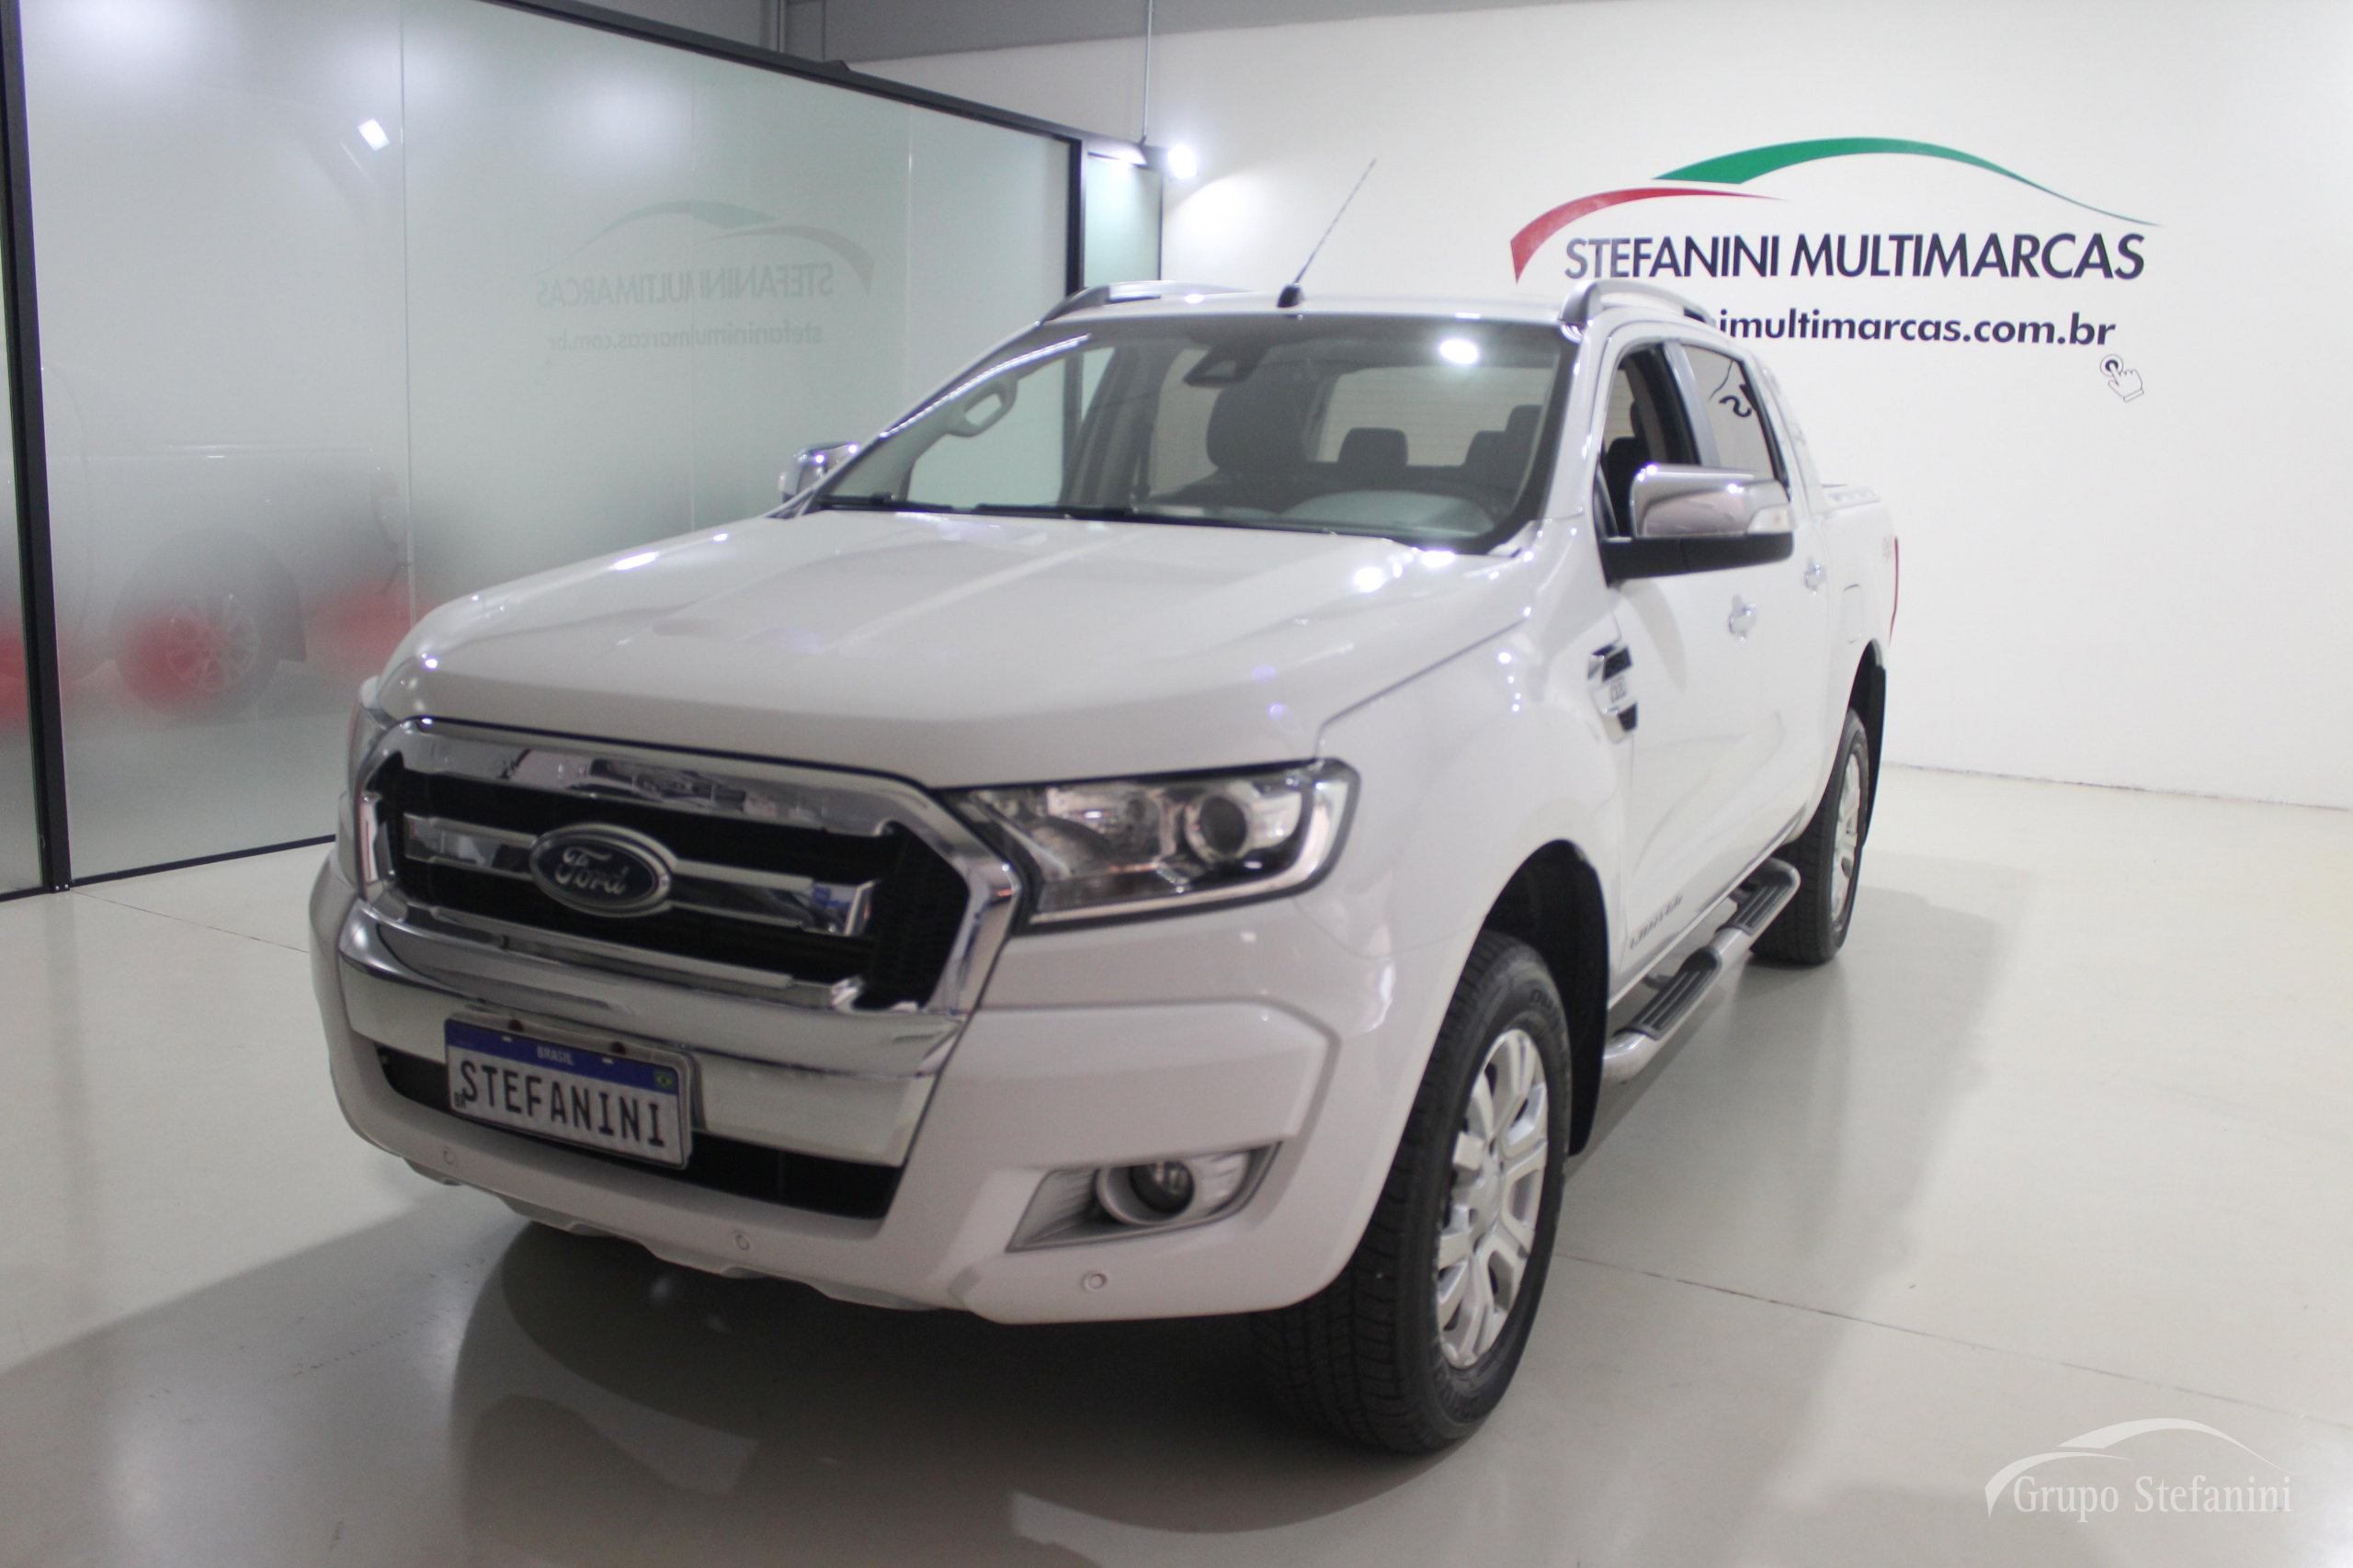 FORD RANGER (CABINE DUPLA) RANGER 3.2 TD LIMITED CD MOD CENTER 4X4 (AUT)